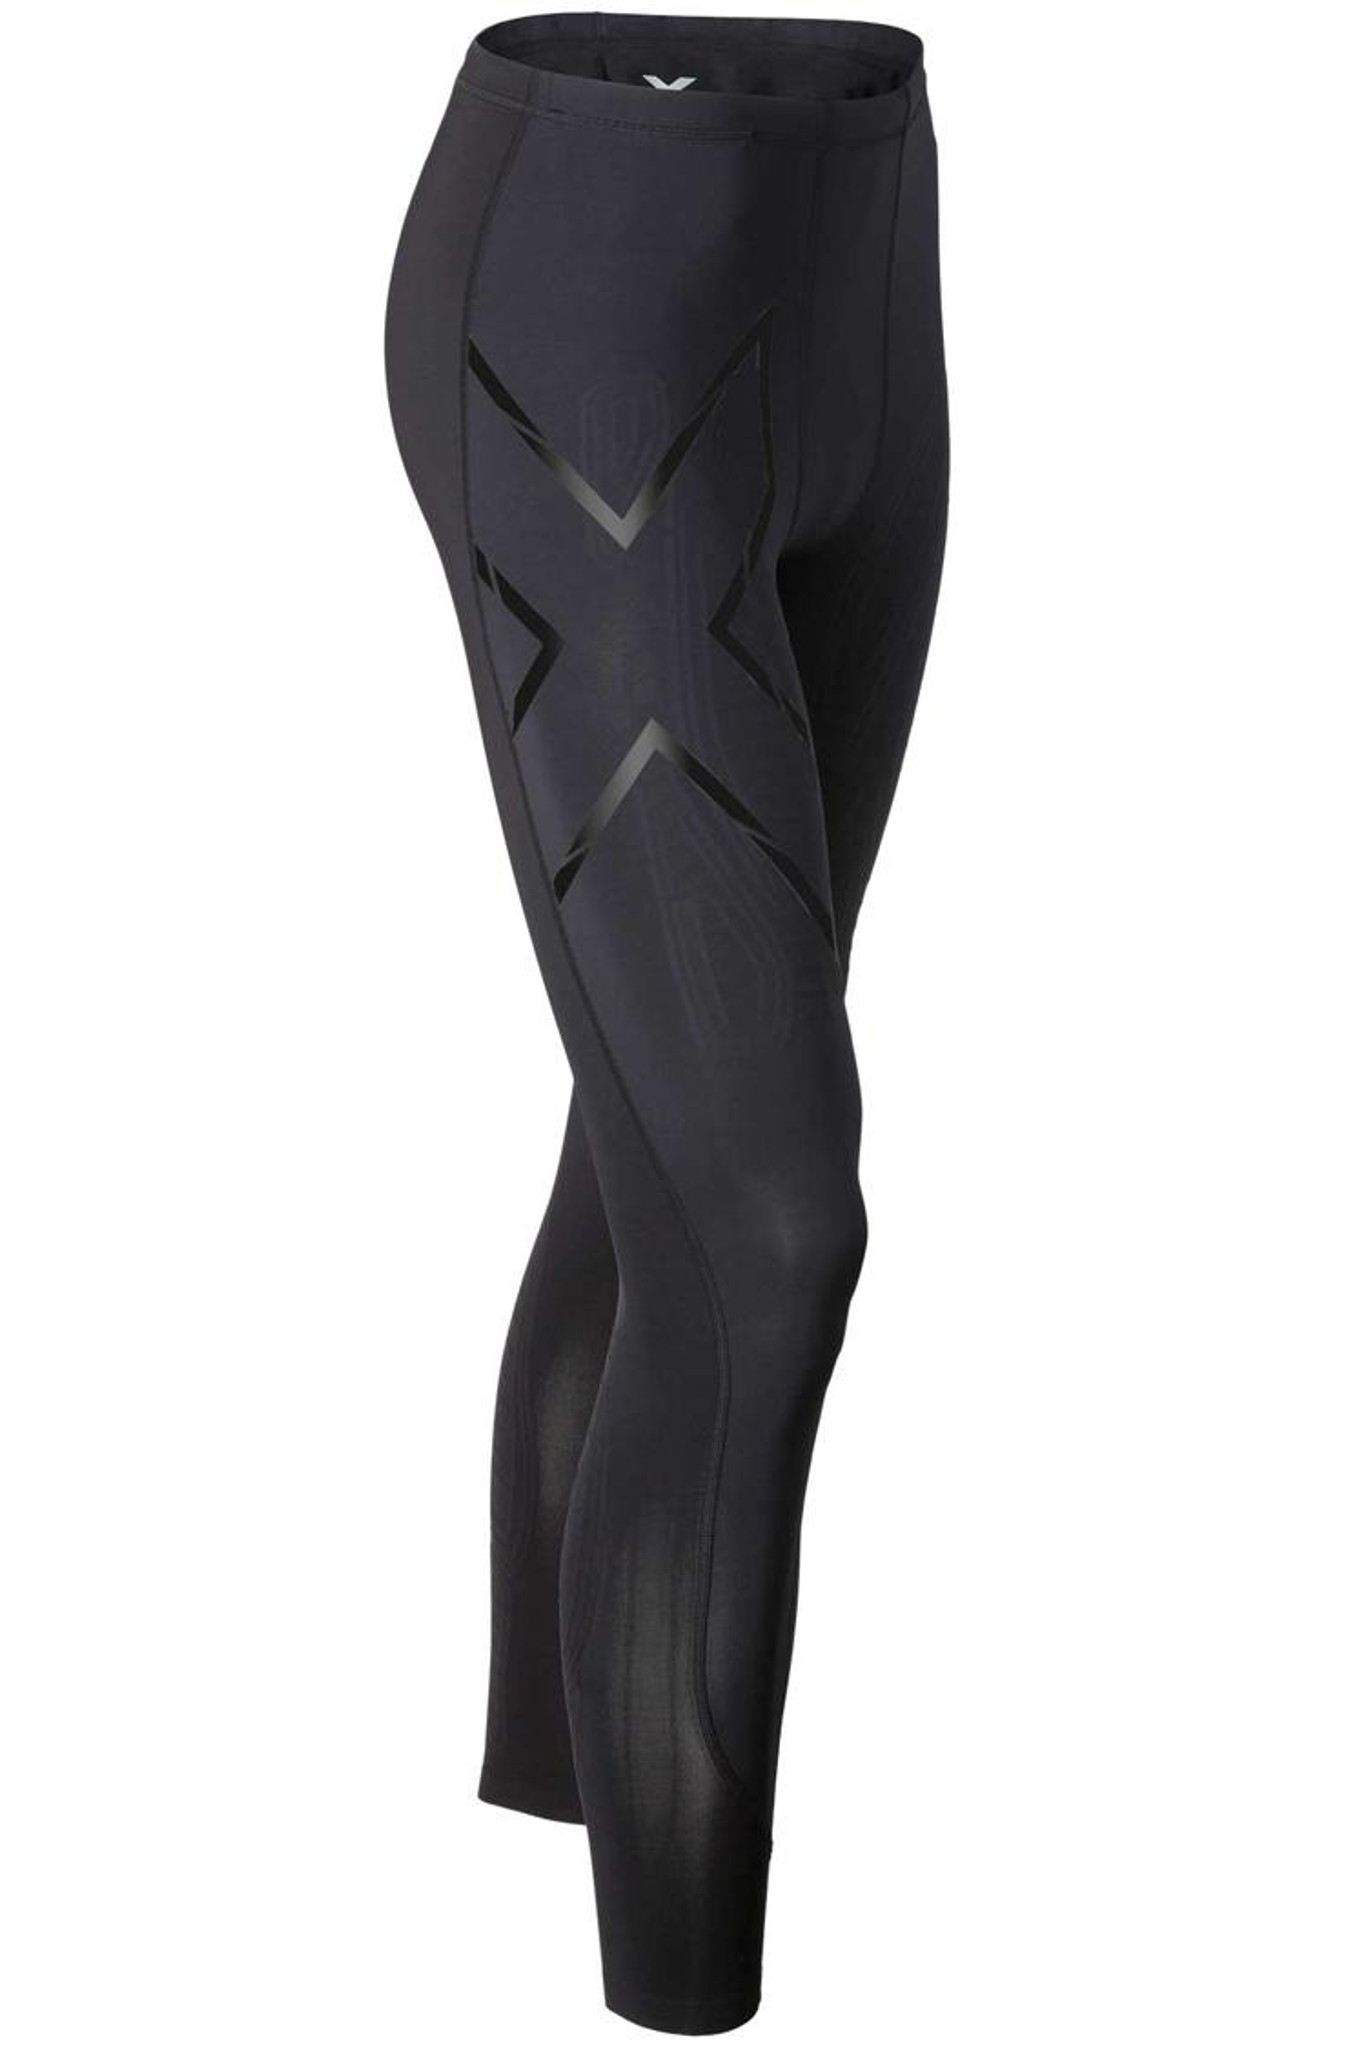 9f37d2ec88427 2XU Elite MCS Men's Black/Nero Compression Tights | MyTriathlon